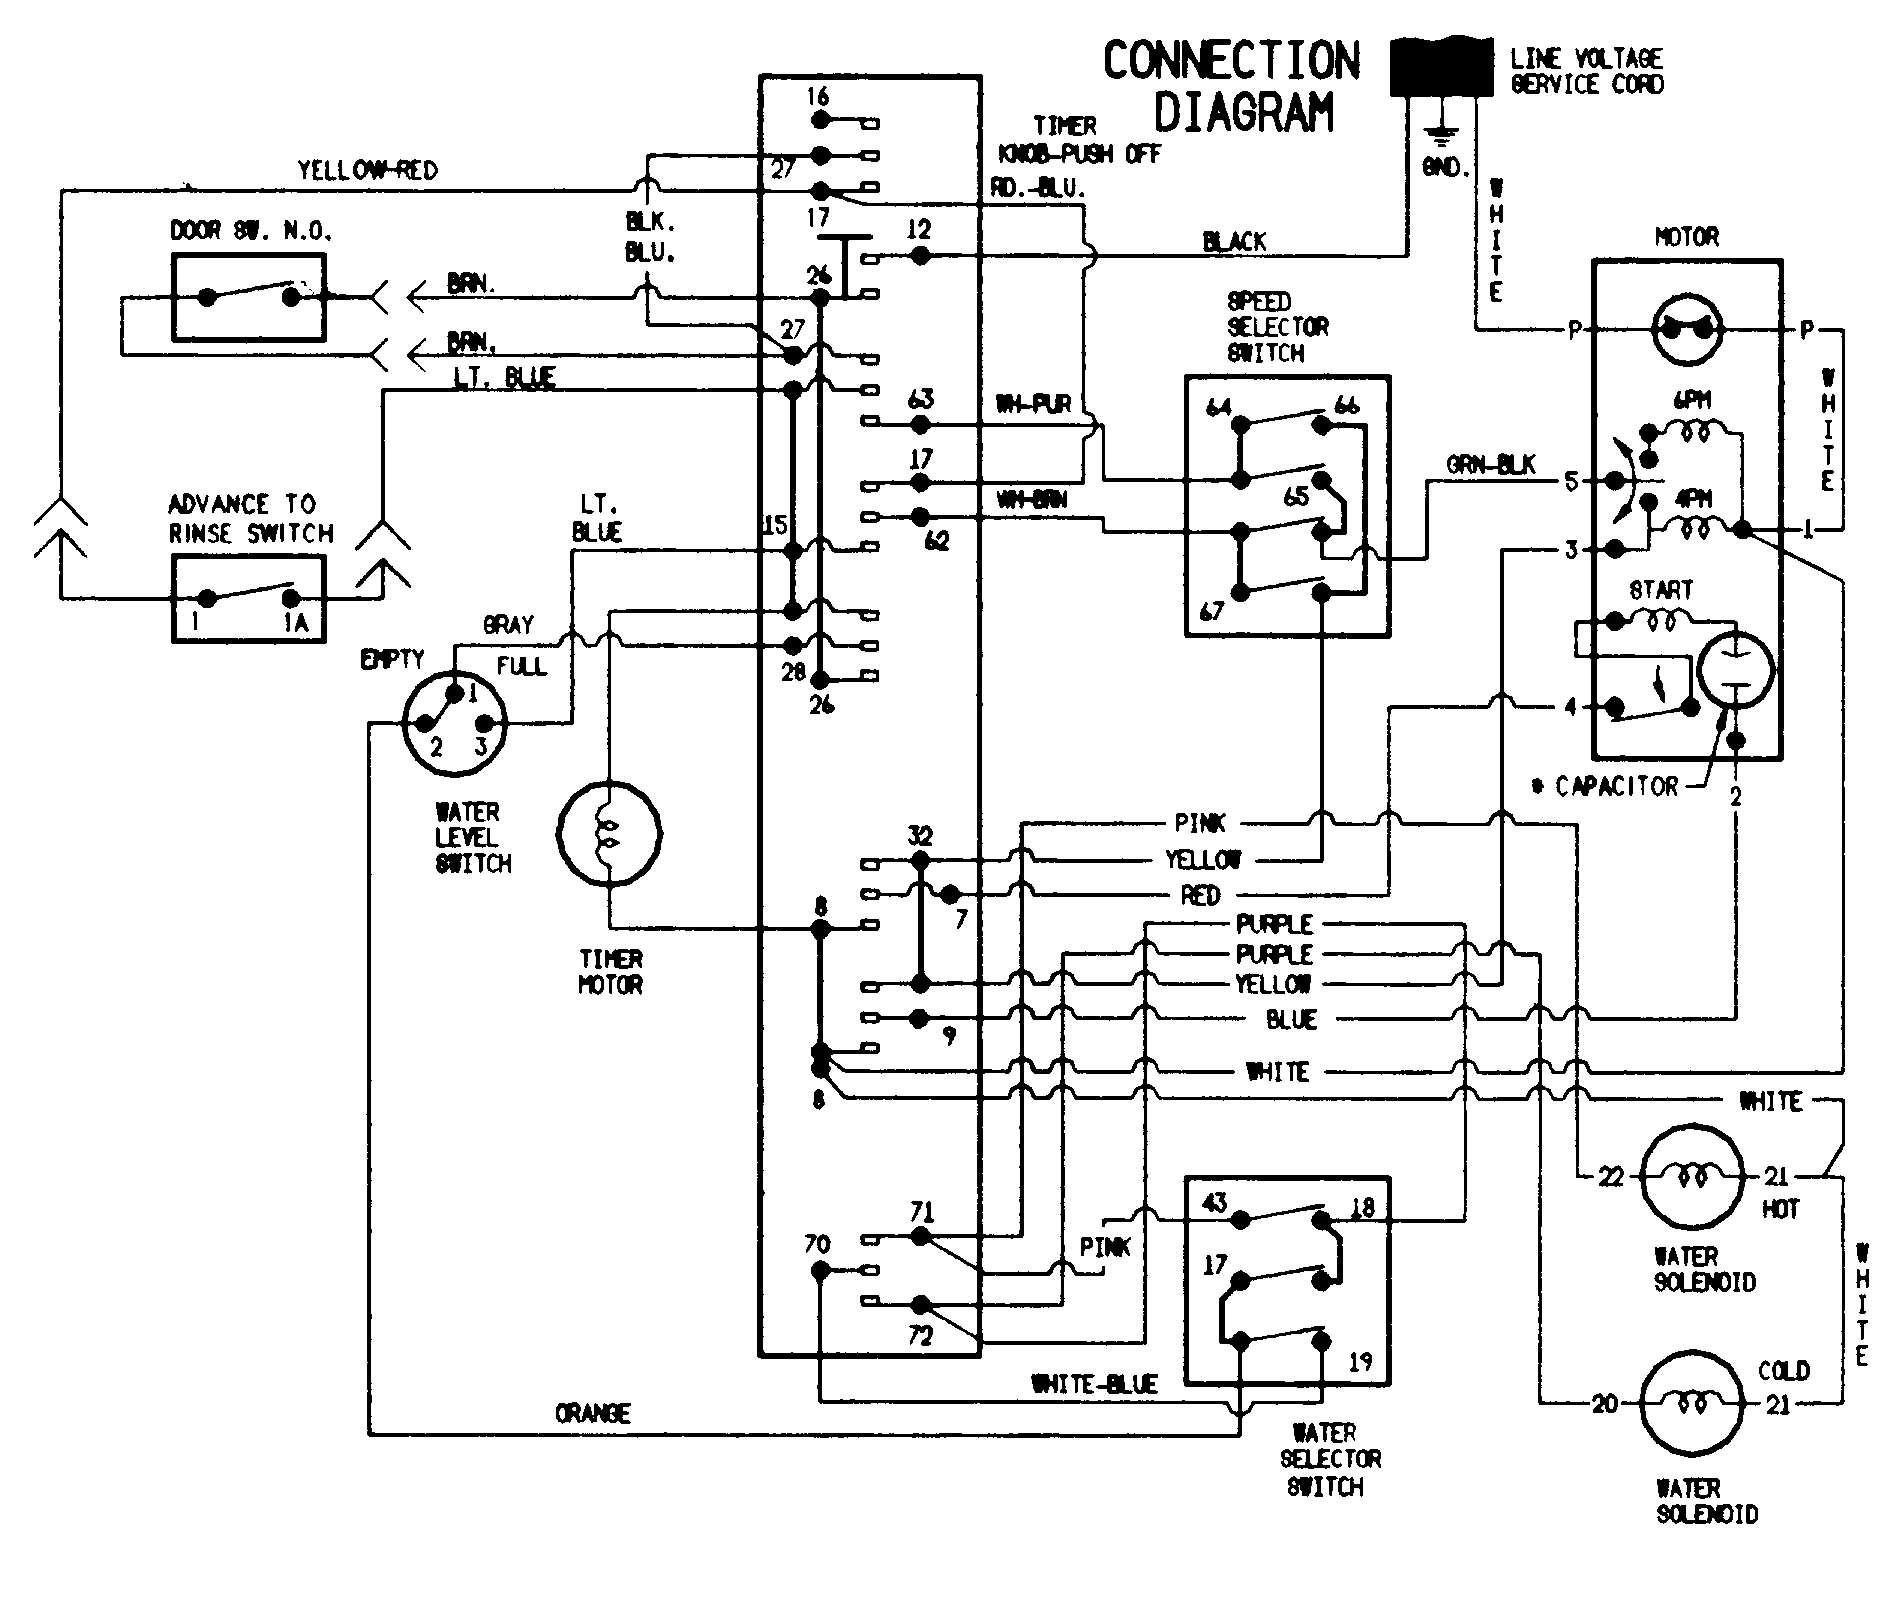 Exhaust Fan Light Switch Wiring Diagram likewise Model Rocket Parts Diagram together with GE Dryer Belt Replacement Diagram in addition Replacement Furnace Gas Valves additionally Kenmore Gas Oven Ignitor Part. on ge motor wiring diagram